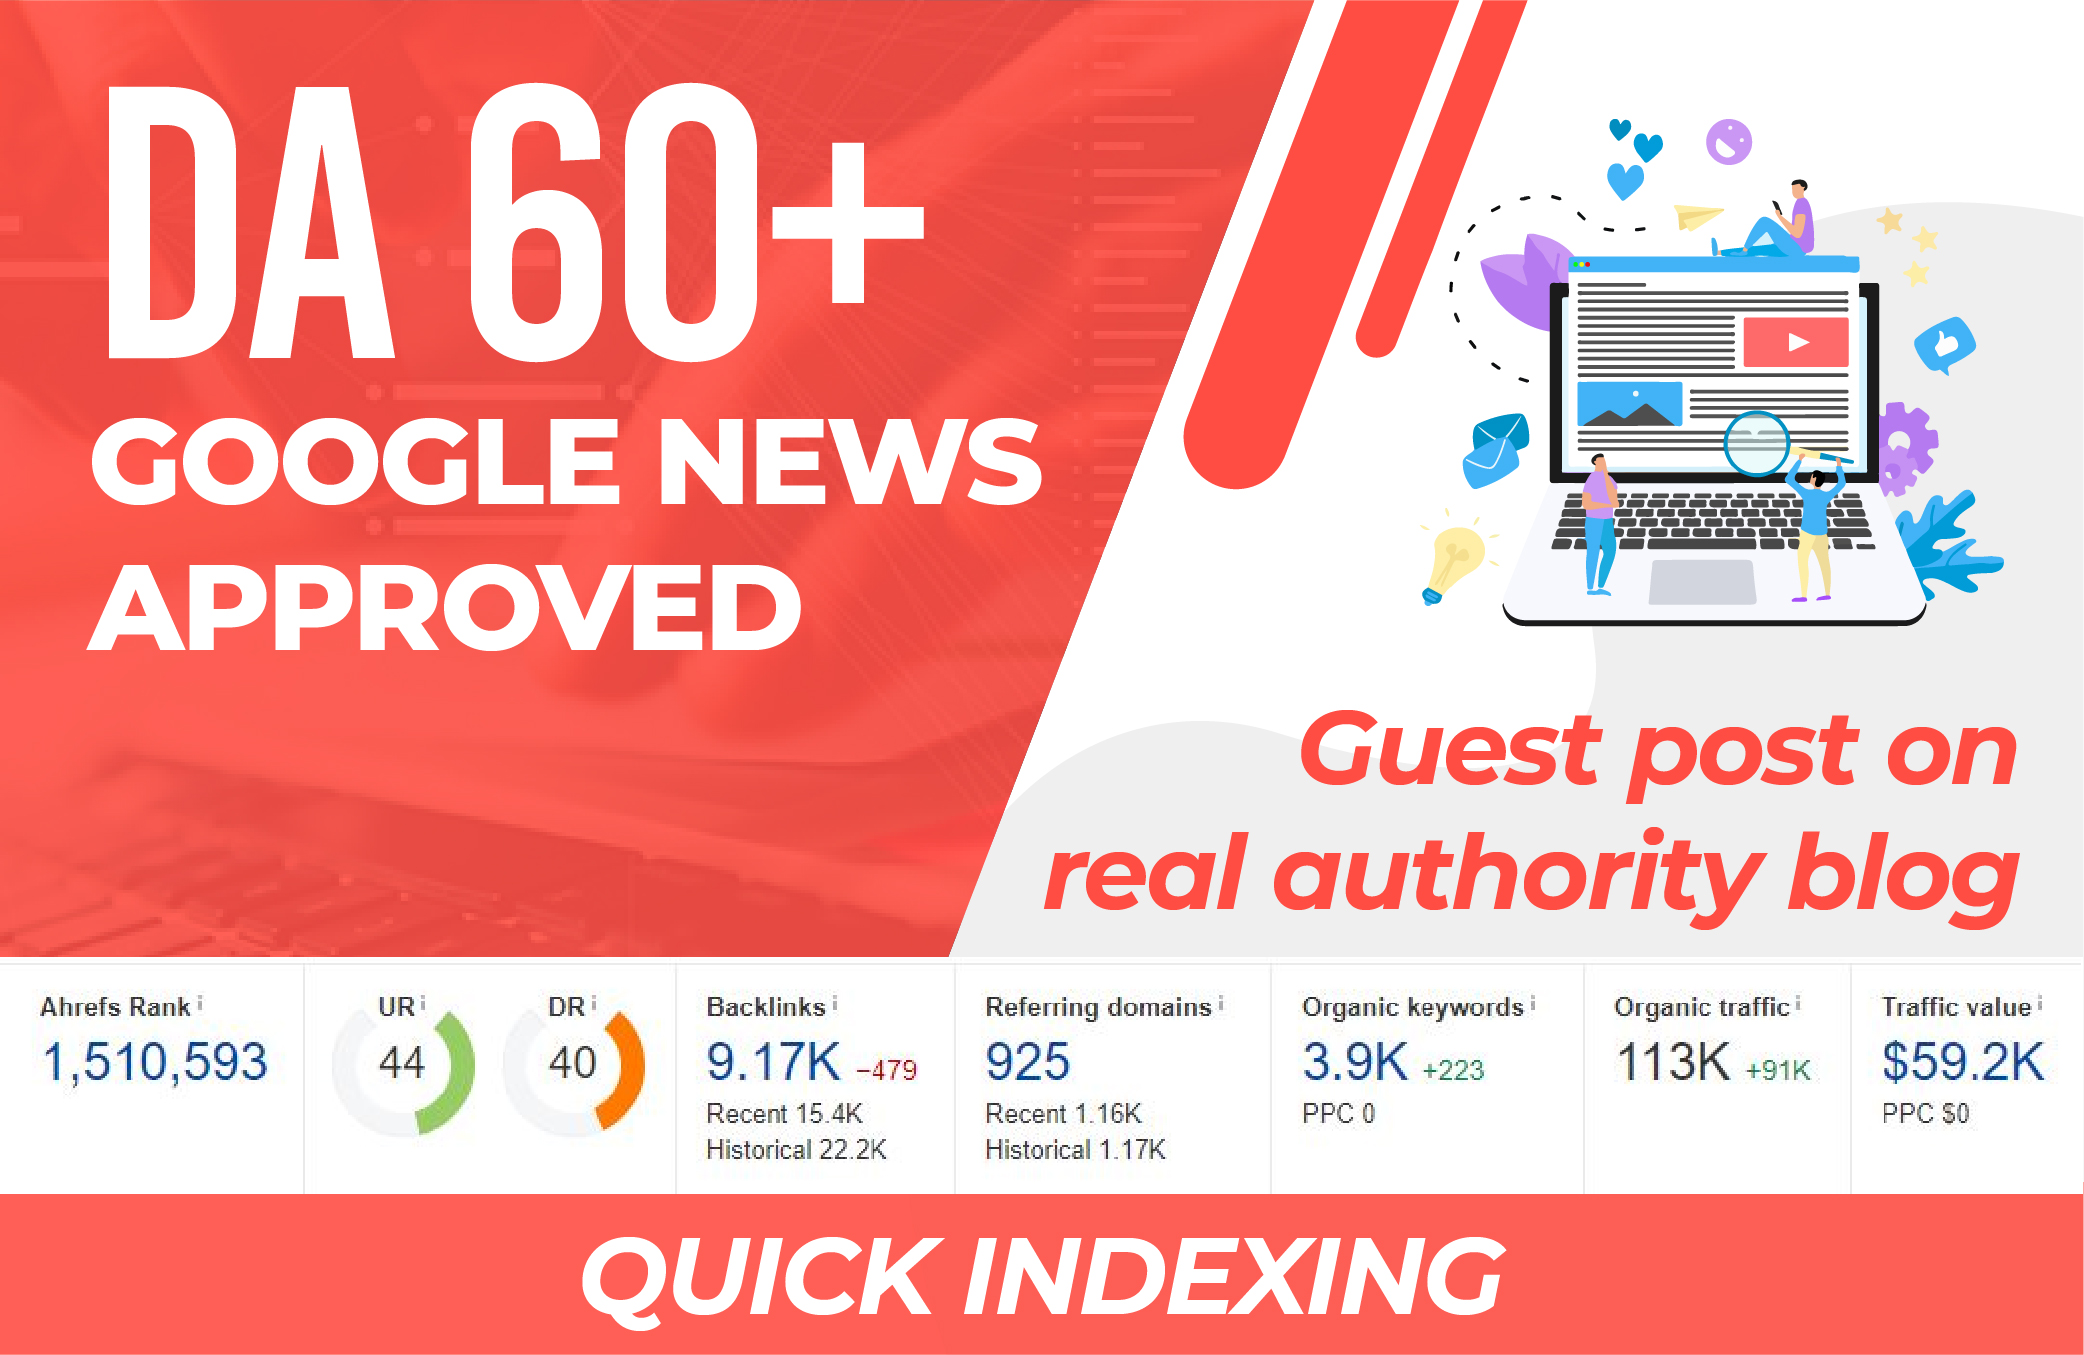 Write and publish guest post on da 60+ google news site dofollow link